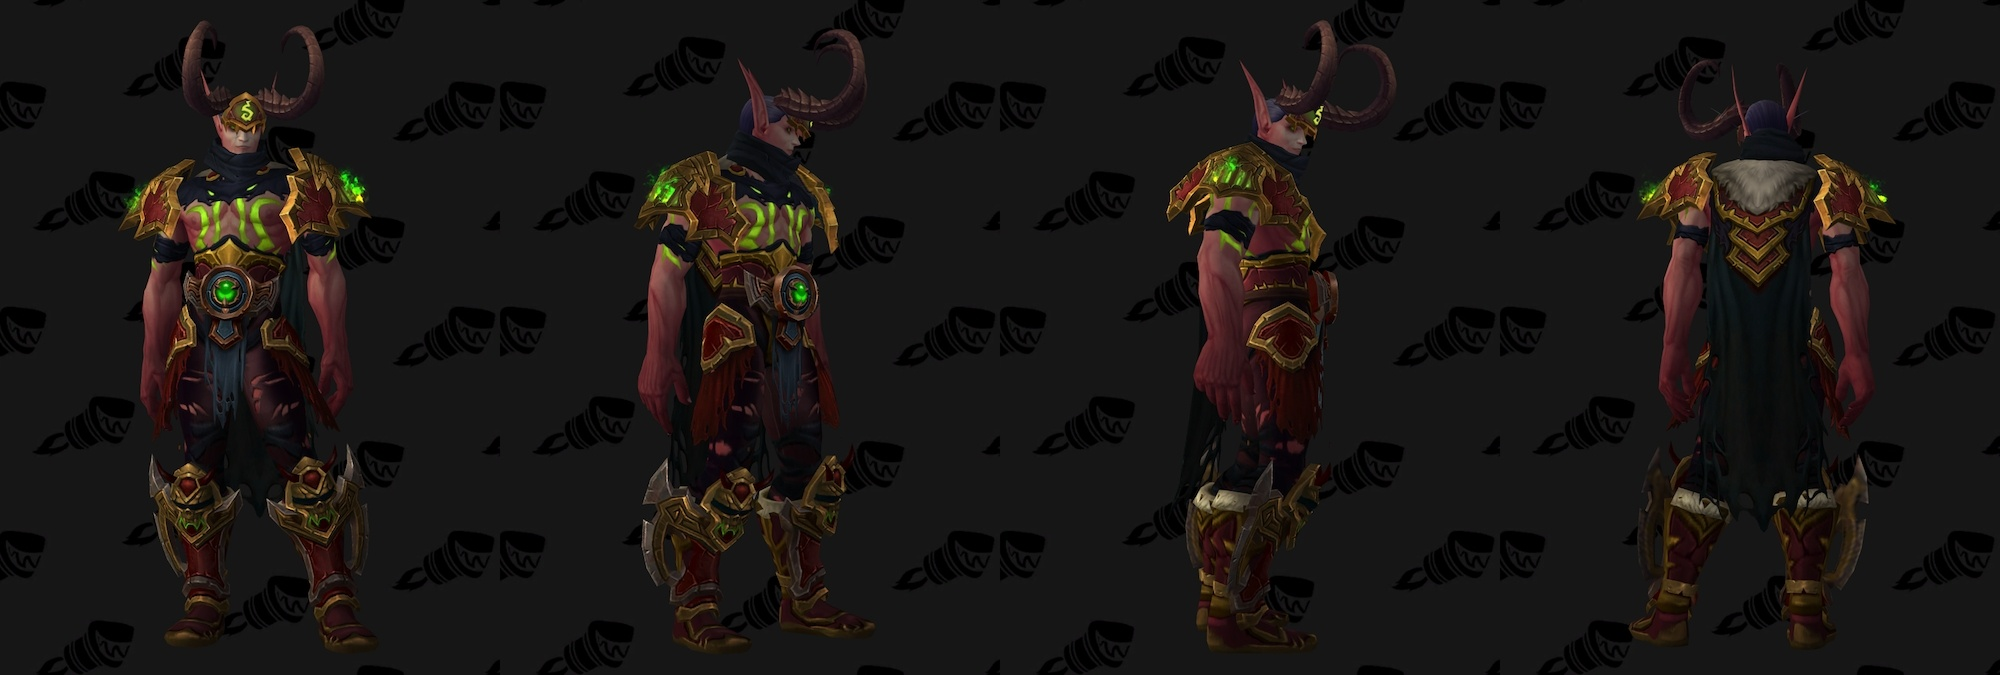 New order hall quest demon hunter class mount shar 39 thos for Demon hunter